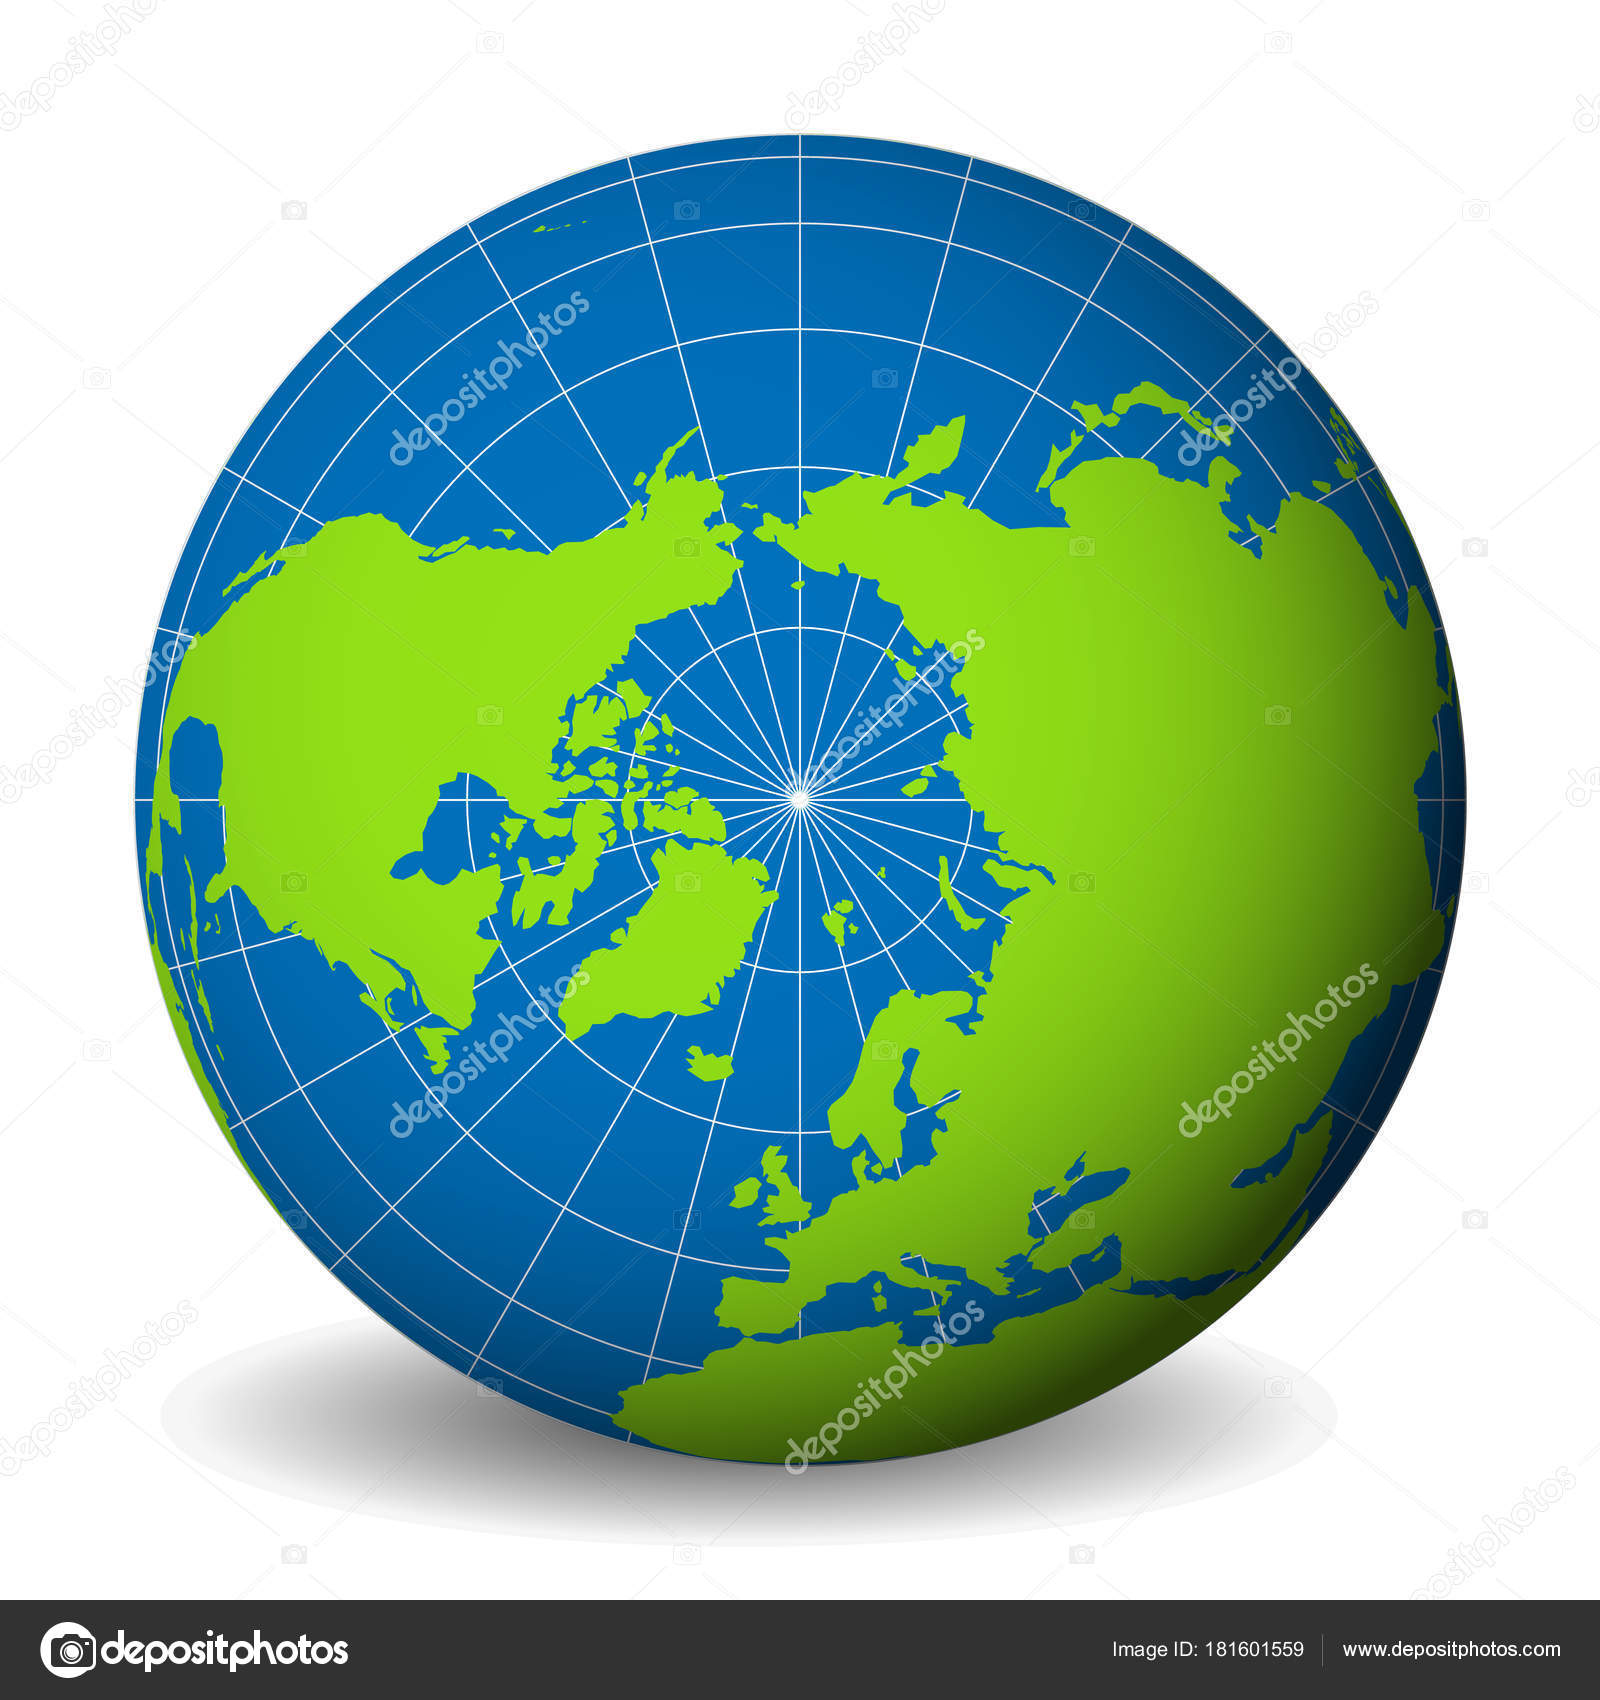 Earth globe with green world map and blue seas and oceans focused on earth globe with green world map and blue seas and oceans focused on arctic ocean and north pole with thin white meridians and parallels gumiabroncs Choice Image